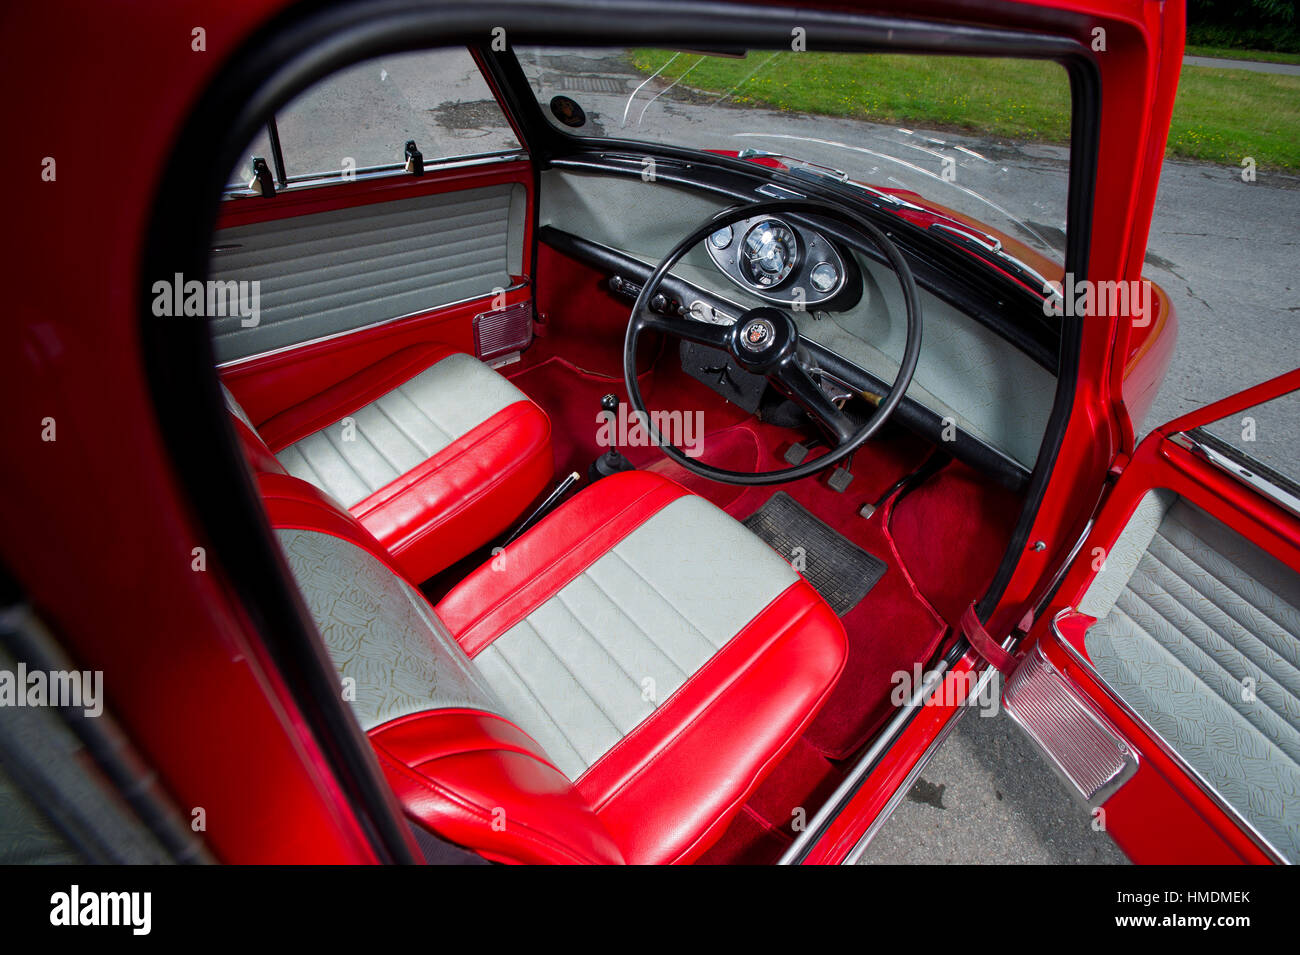 1968 mini cooper s classic compact british sports car basic interior stock photo royalty free. Black Bedroom Furniture Sets. Home Design Ideas